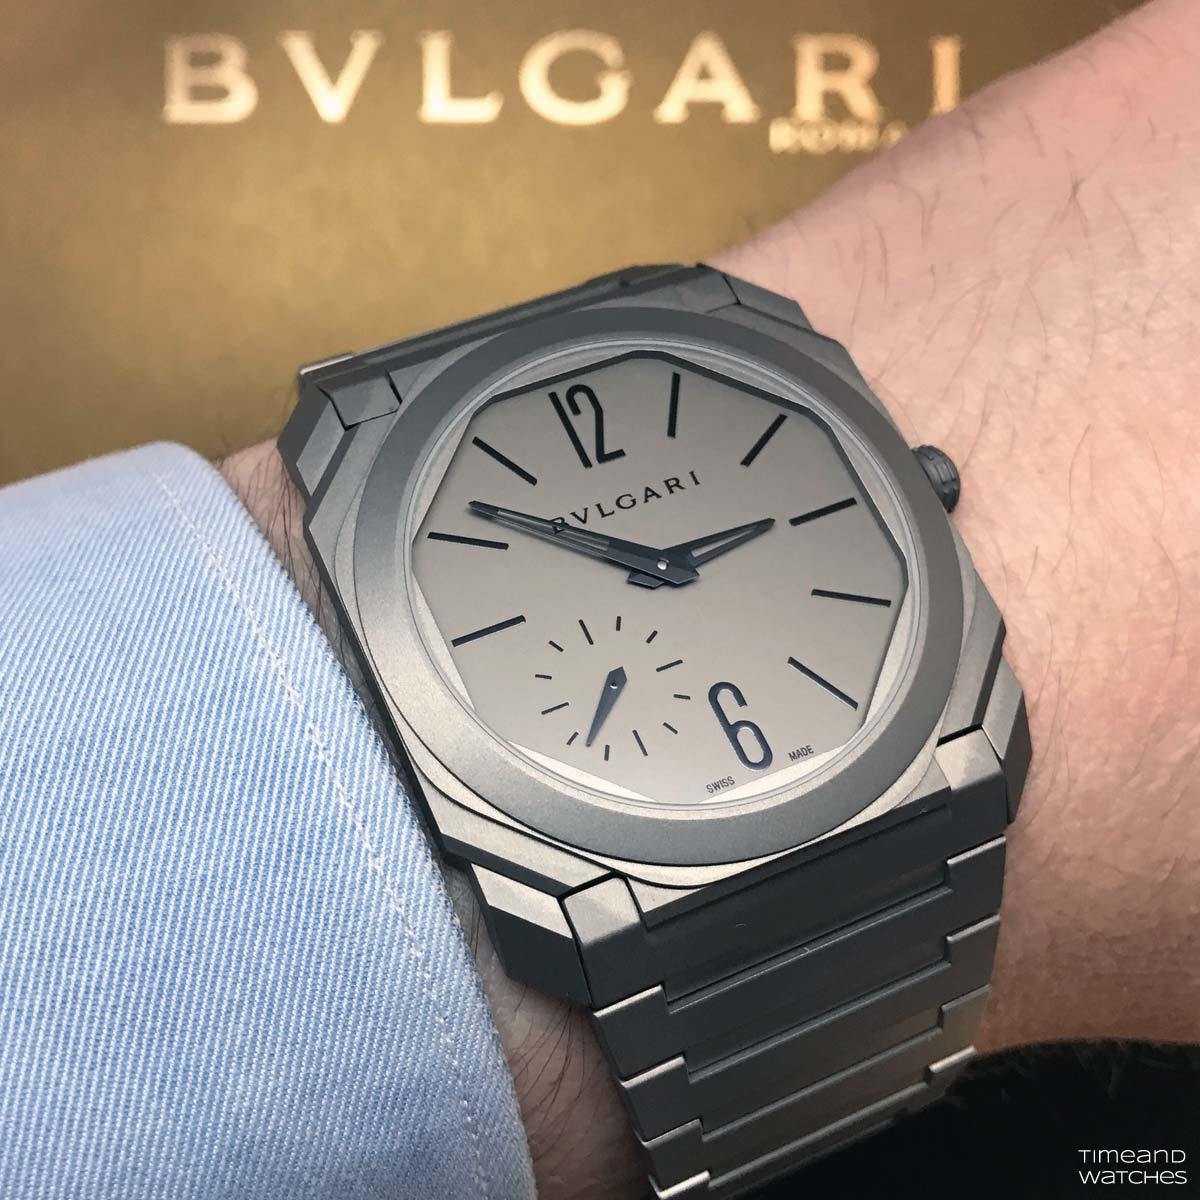 bulgari octo finissimo automatic time and watches